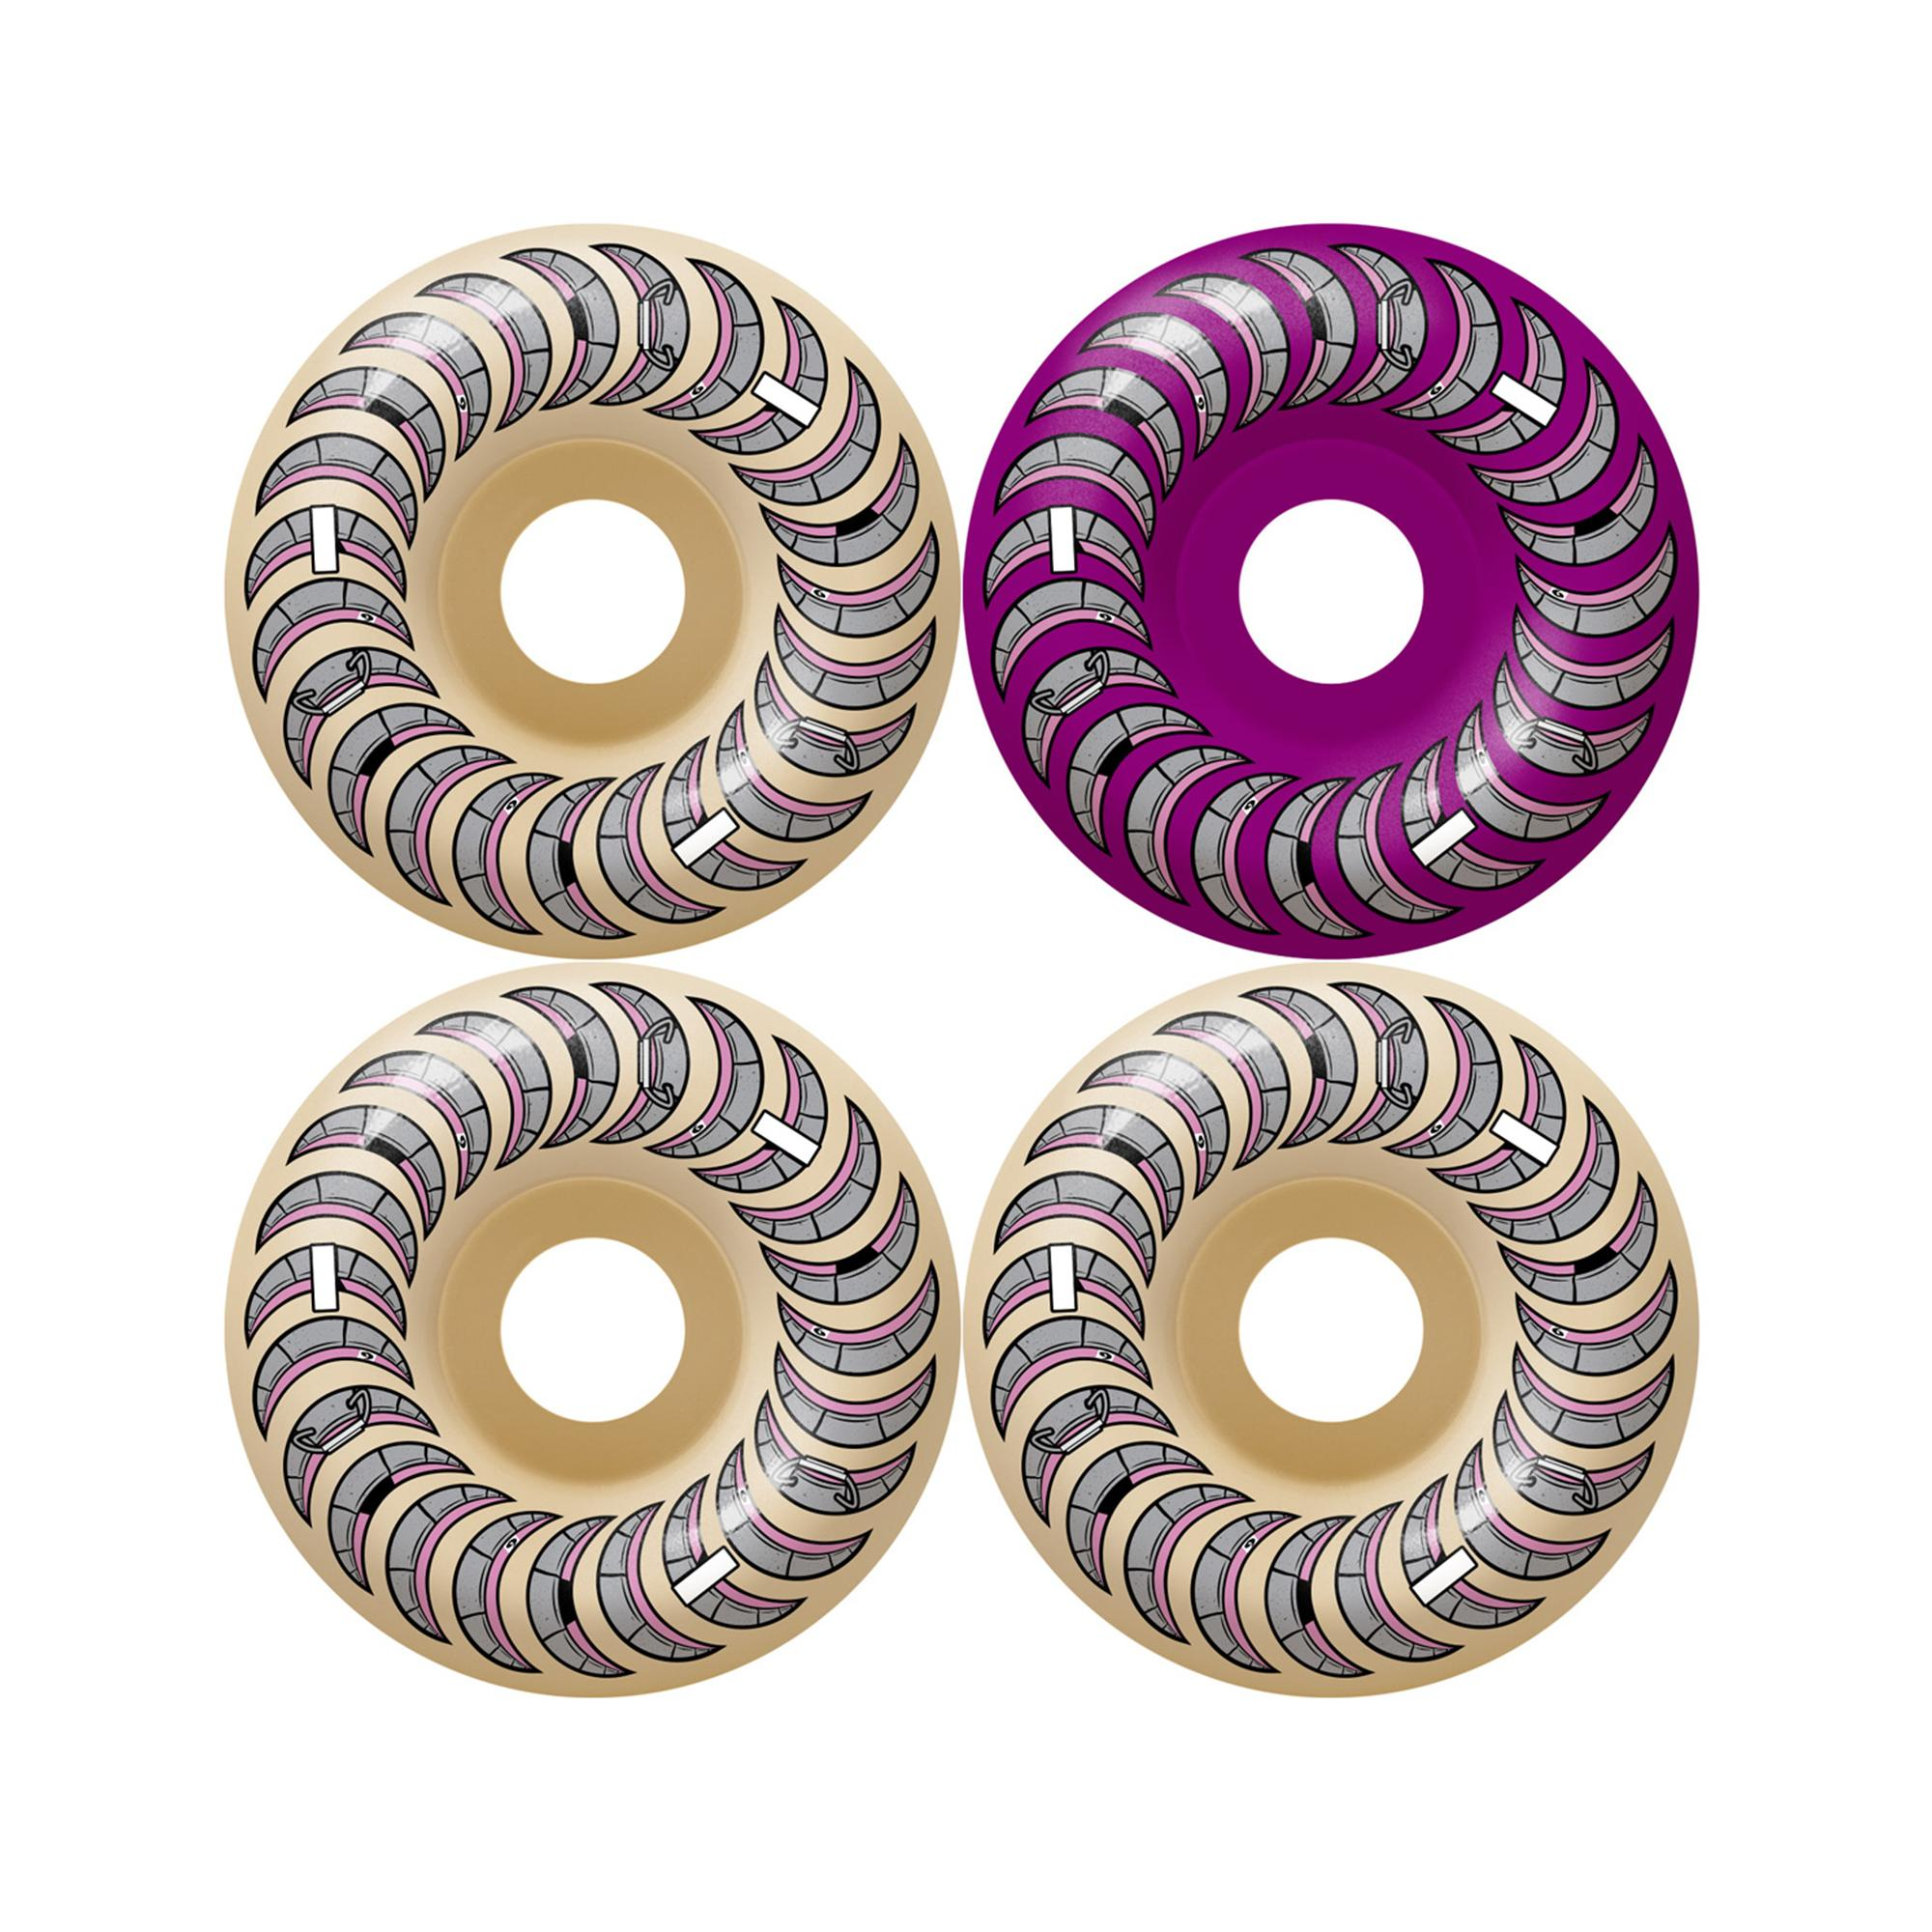 Spitfire Formula Four Classic Full 99 Wheels Product Photo #5